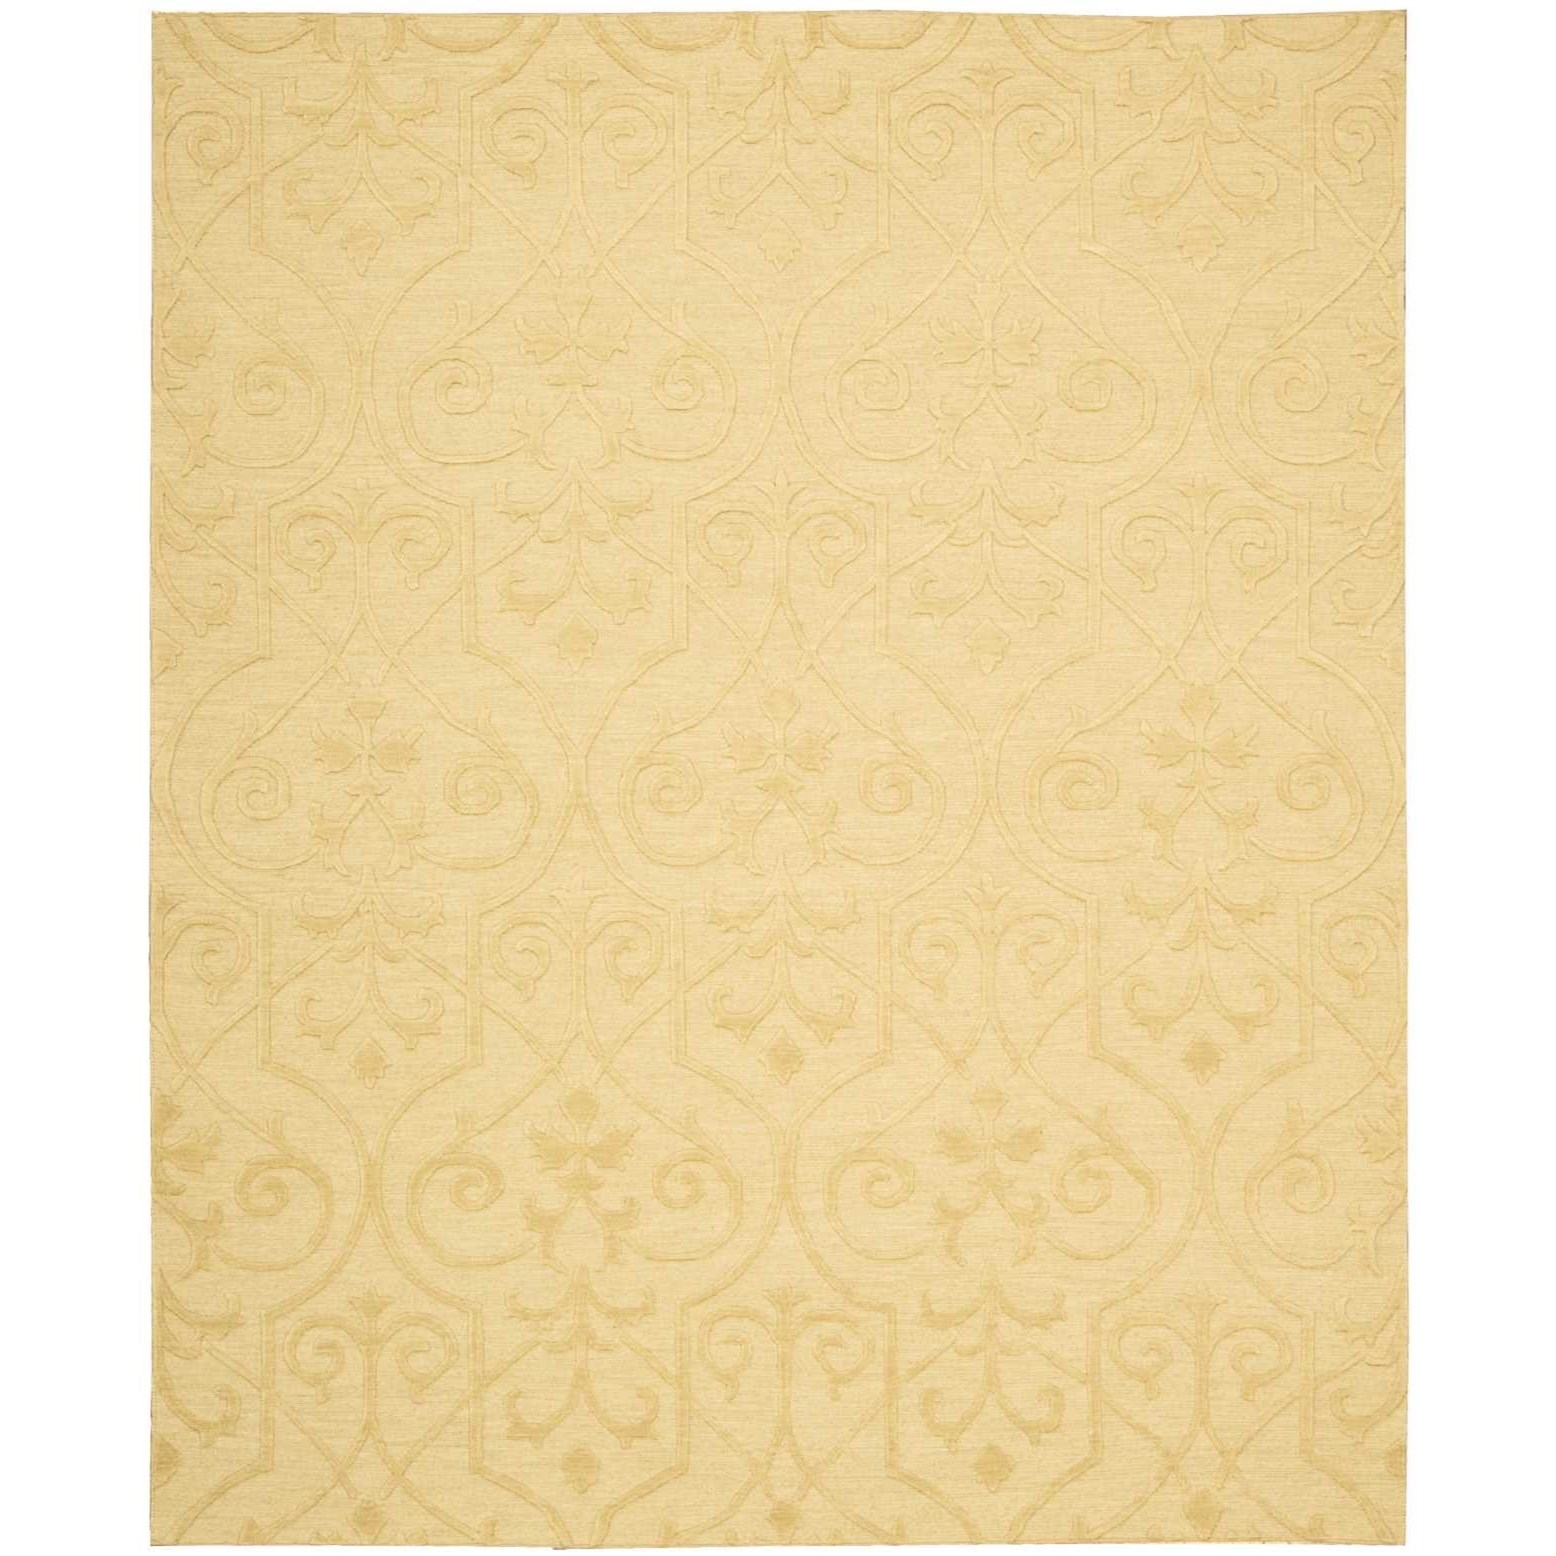 "3'9"" x 5'9"" Straw Rectangle Rug"